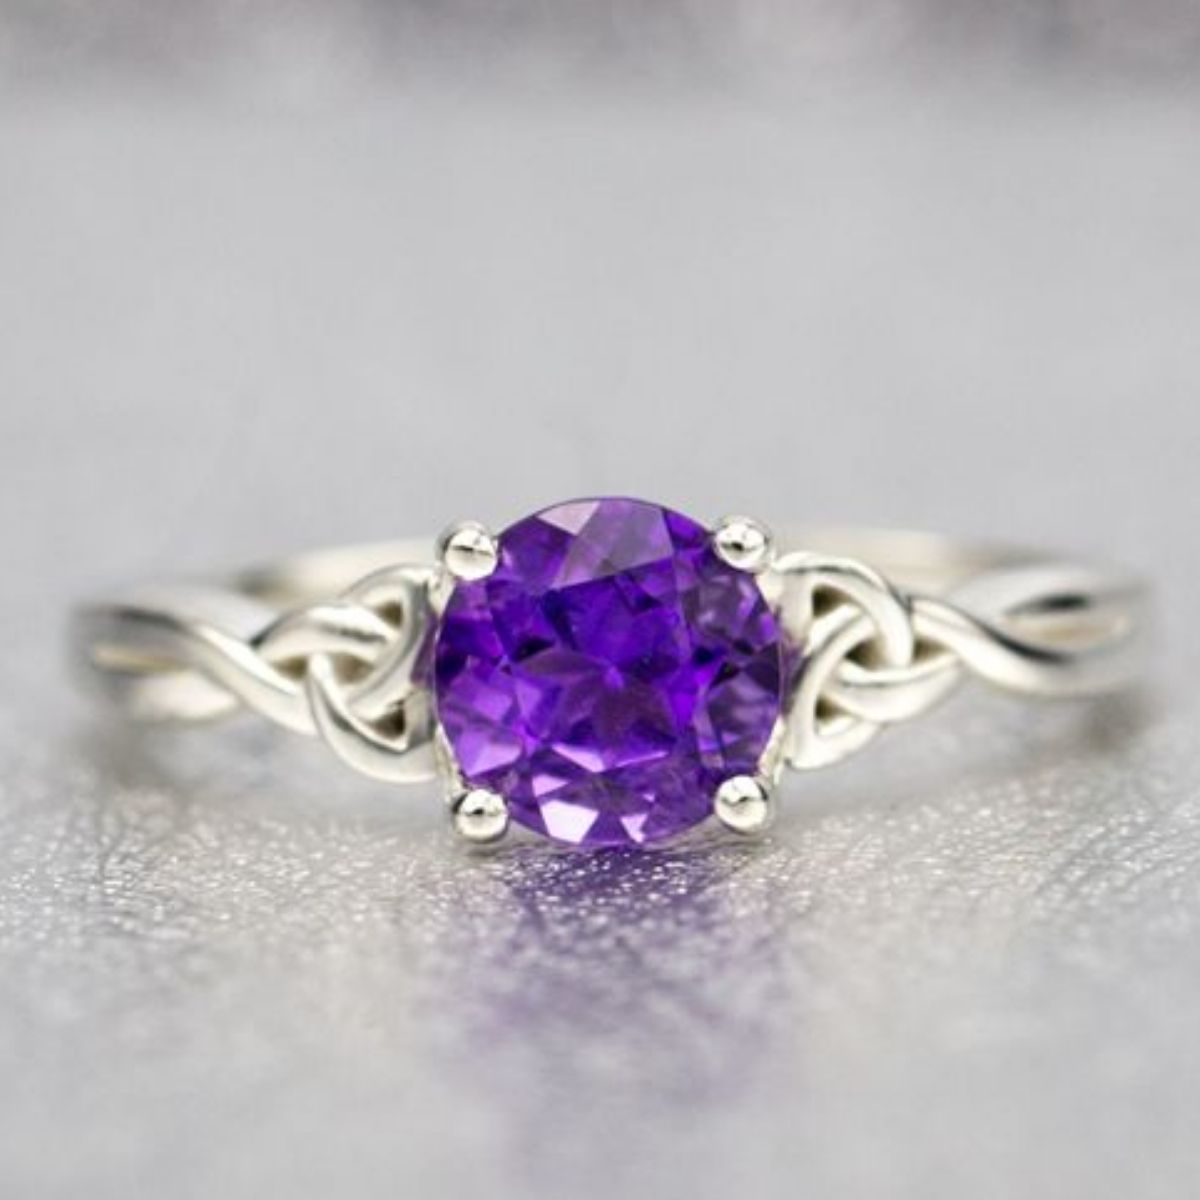 rings ring large gold white purple context amethyst diamond p cocktail